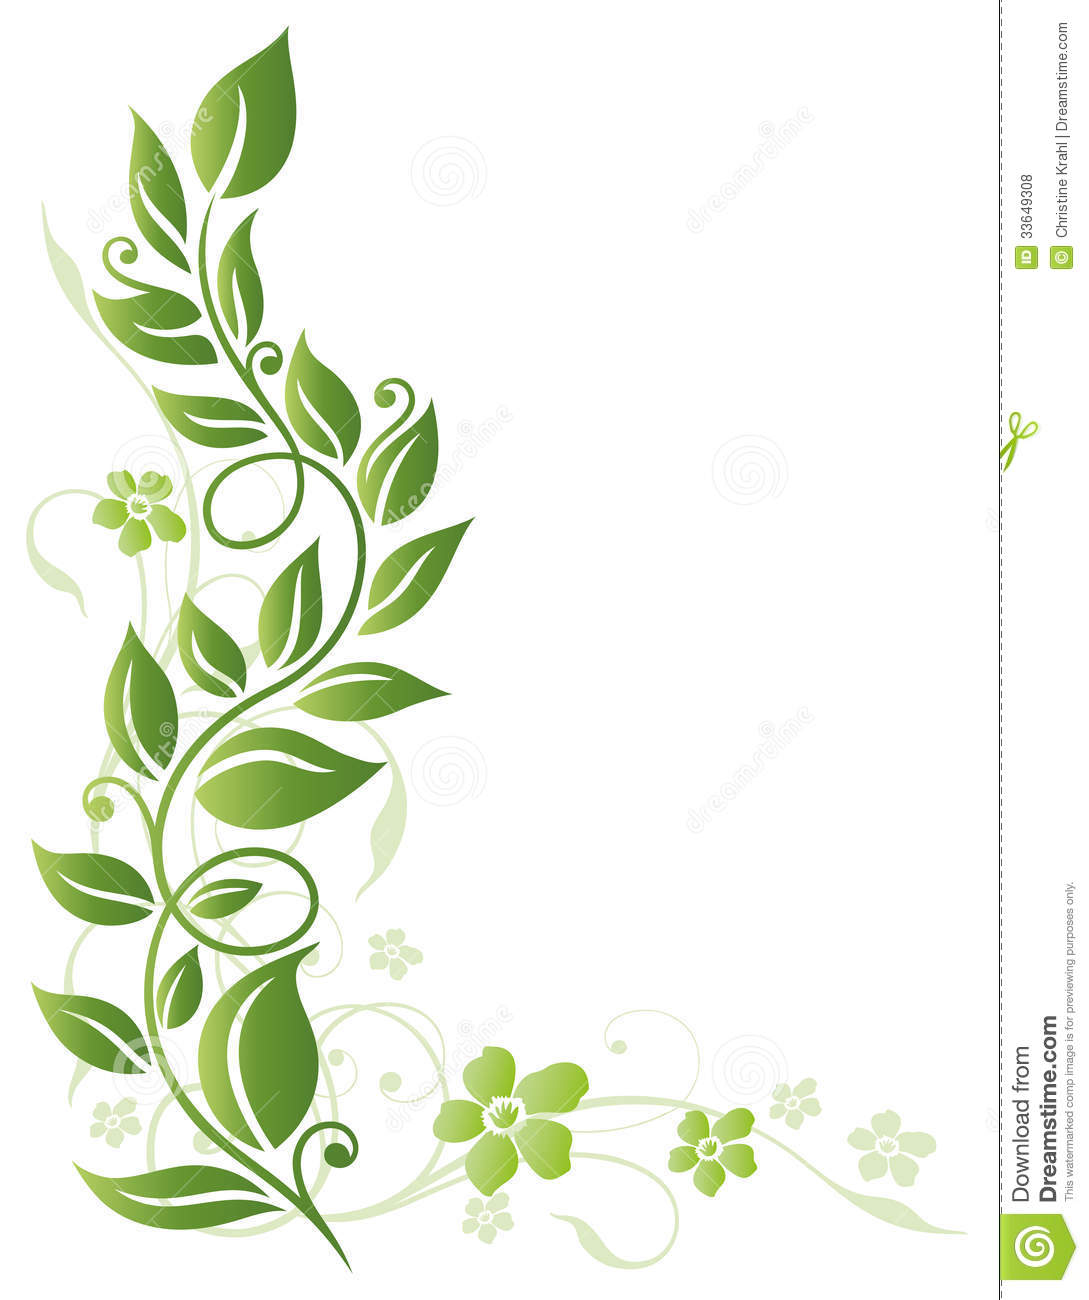 Leaves, Flowers, Spring Royalty Free Stock Photos.